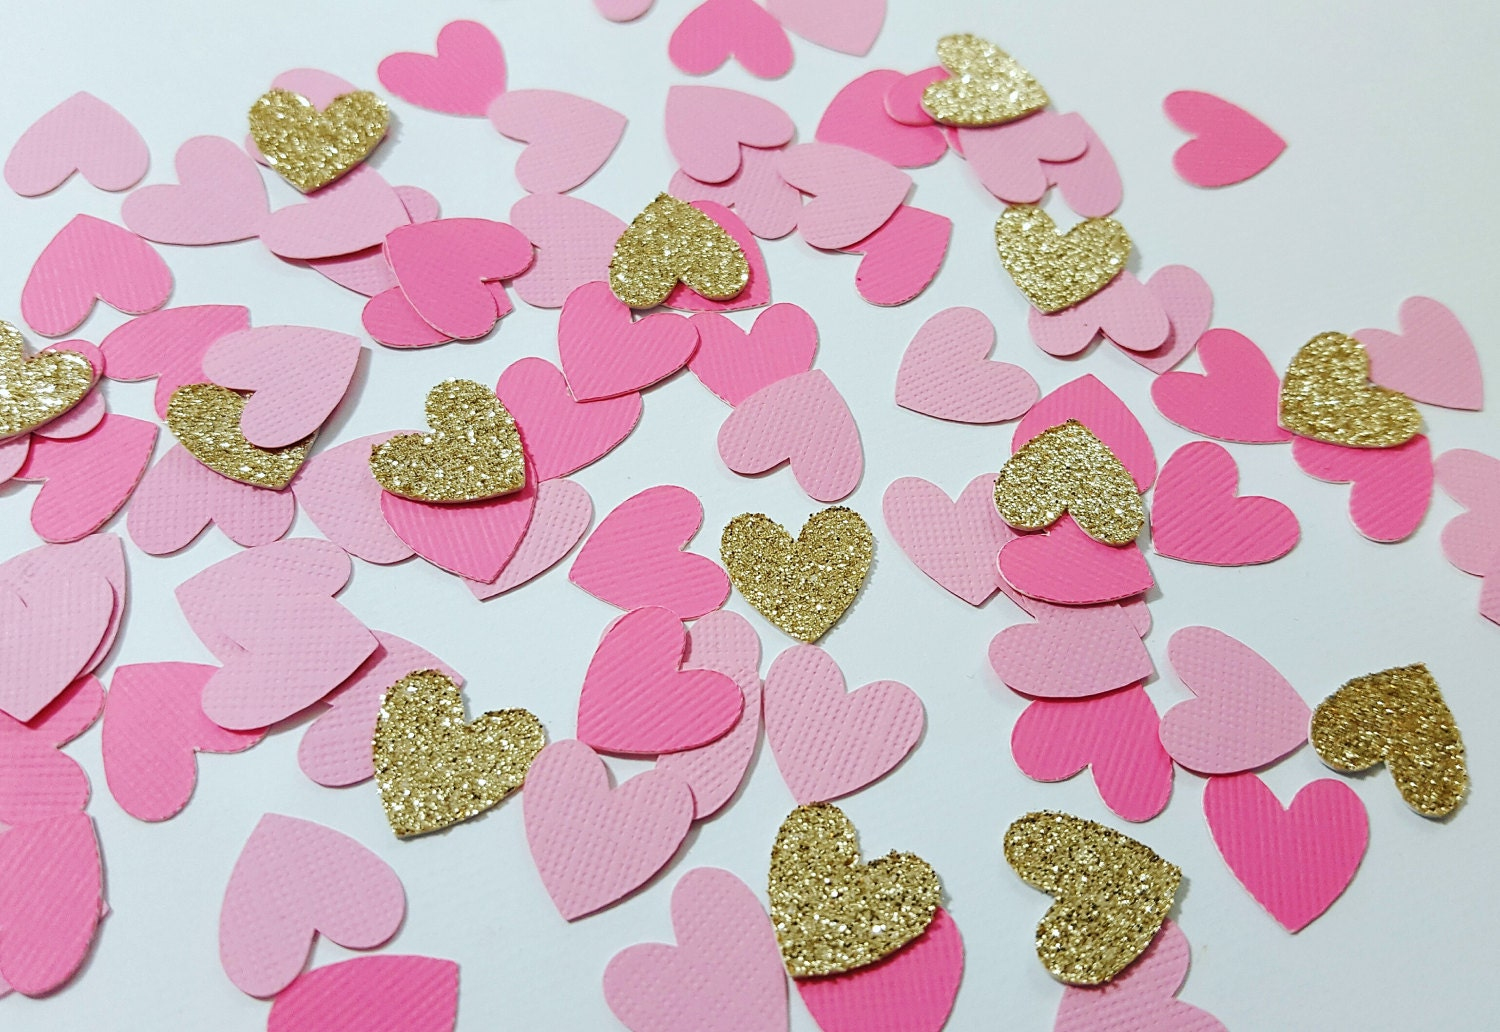 Light Pink, Medium Pink, Gold or Silver Glitter Heart Confetti ...